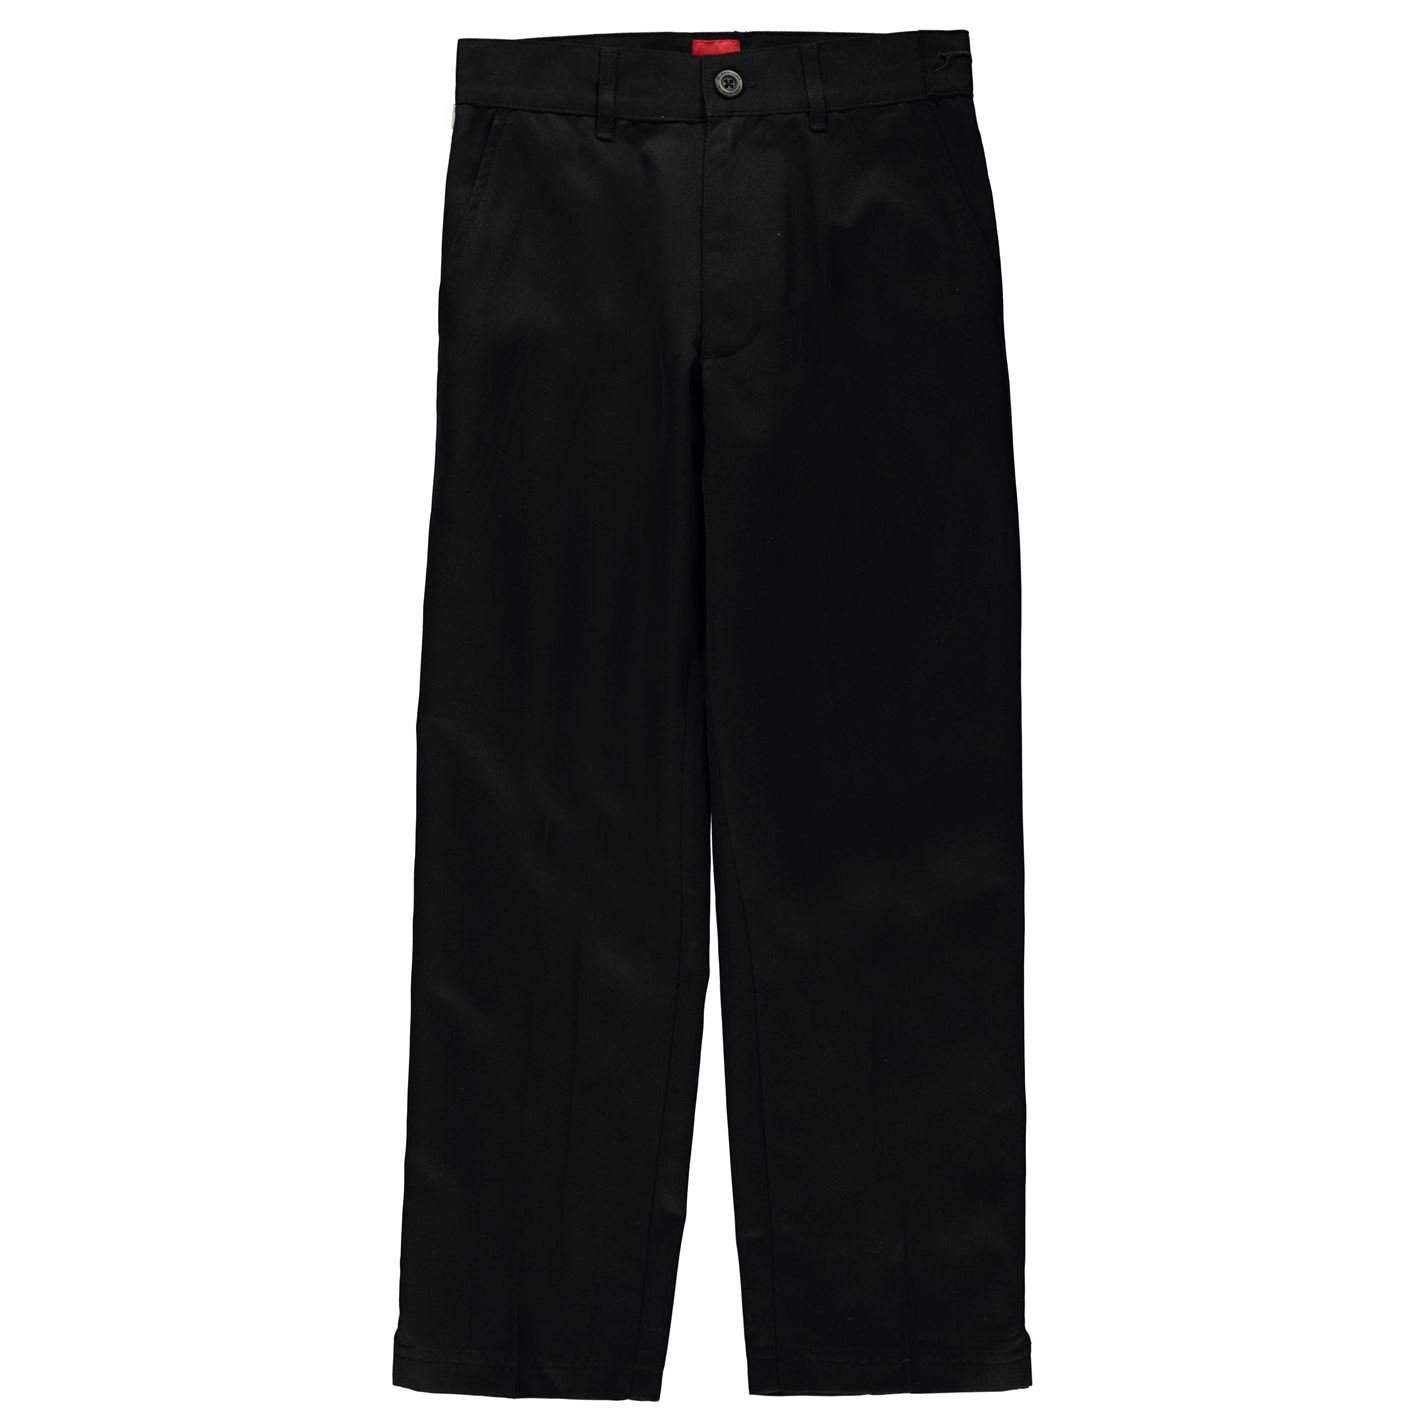 Slazenger Kids Boys Golf Trousers Junior Pants Bottoms Black 9-10 (MB) by Slazenger